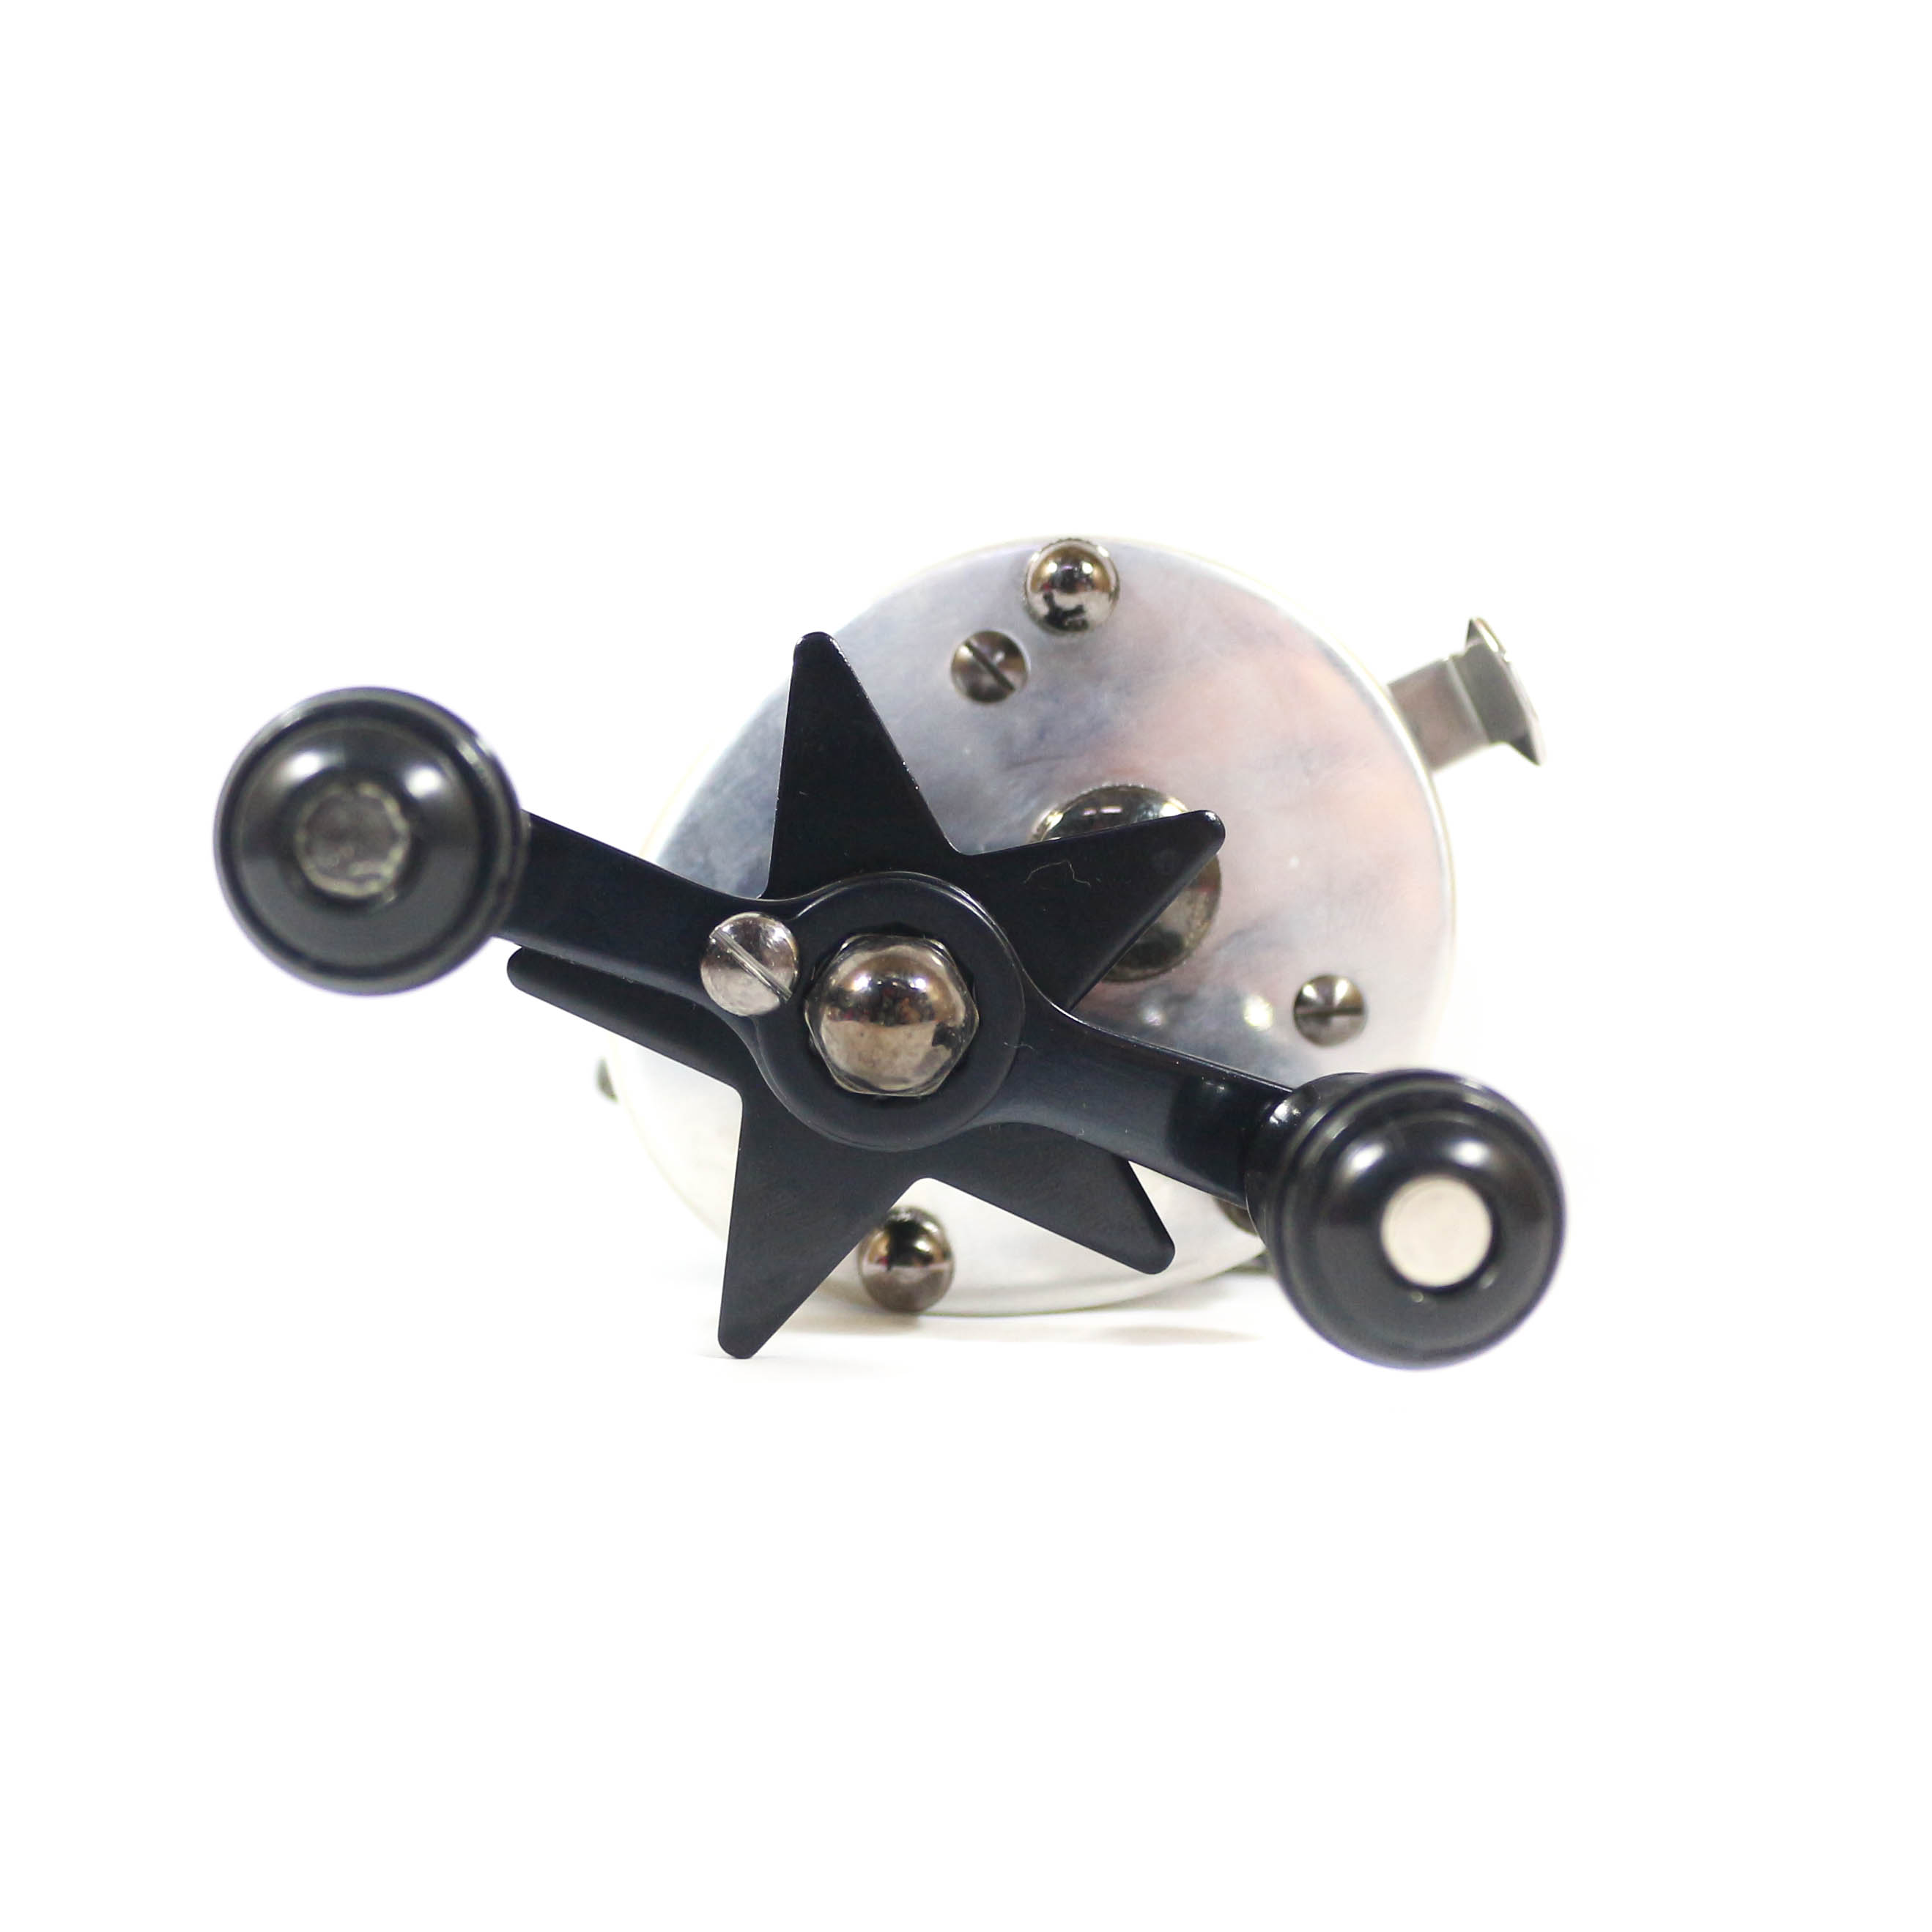 Frog Baitcast Reel Toy Machine Silver (2010)